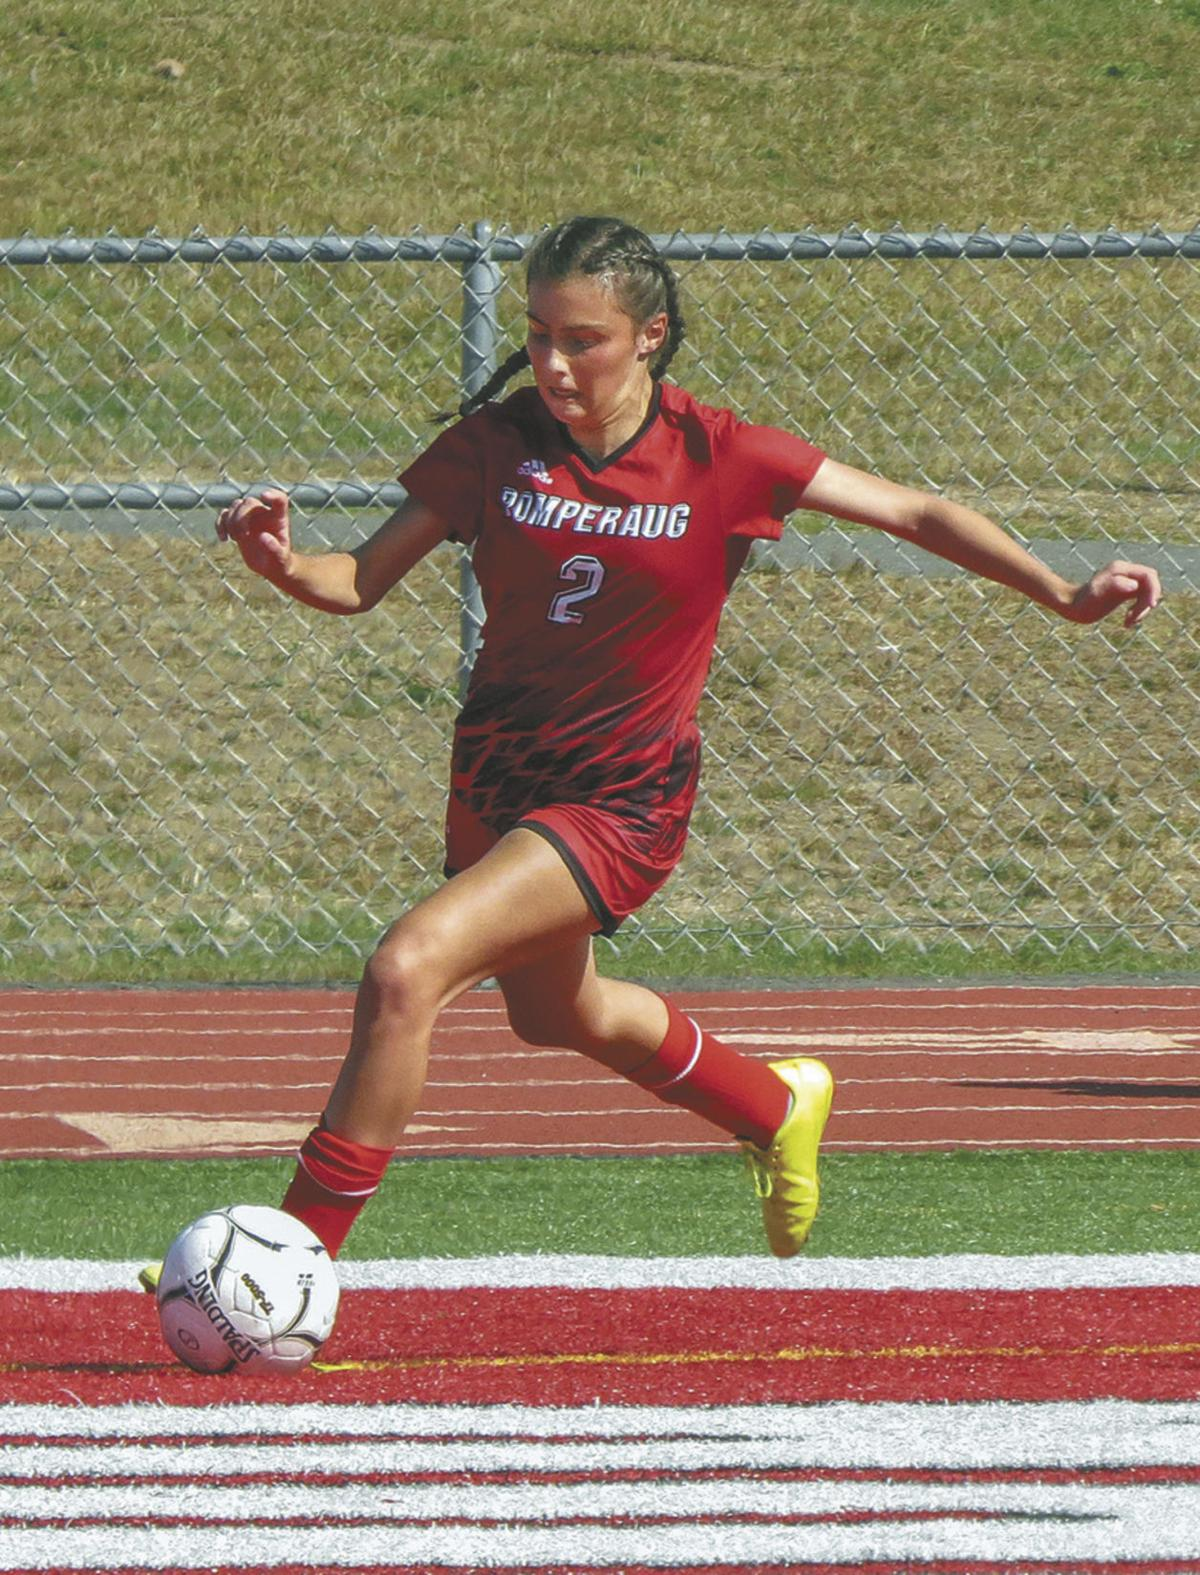 Pomperaug: Girls' Soccer Burns Kolbe 7-0